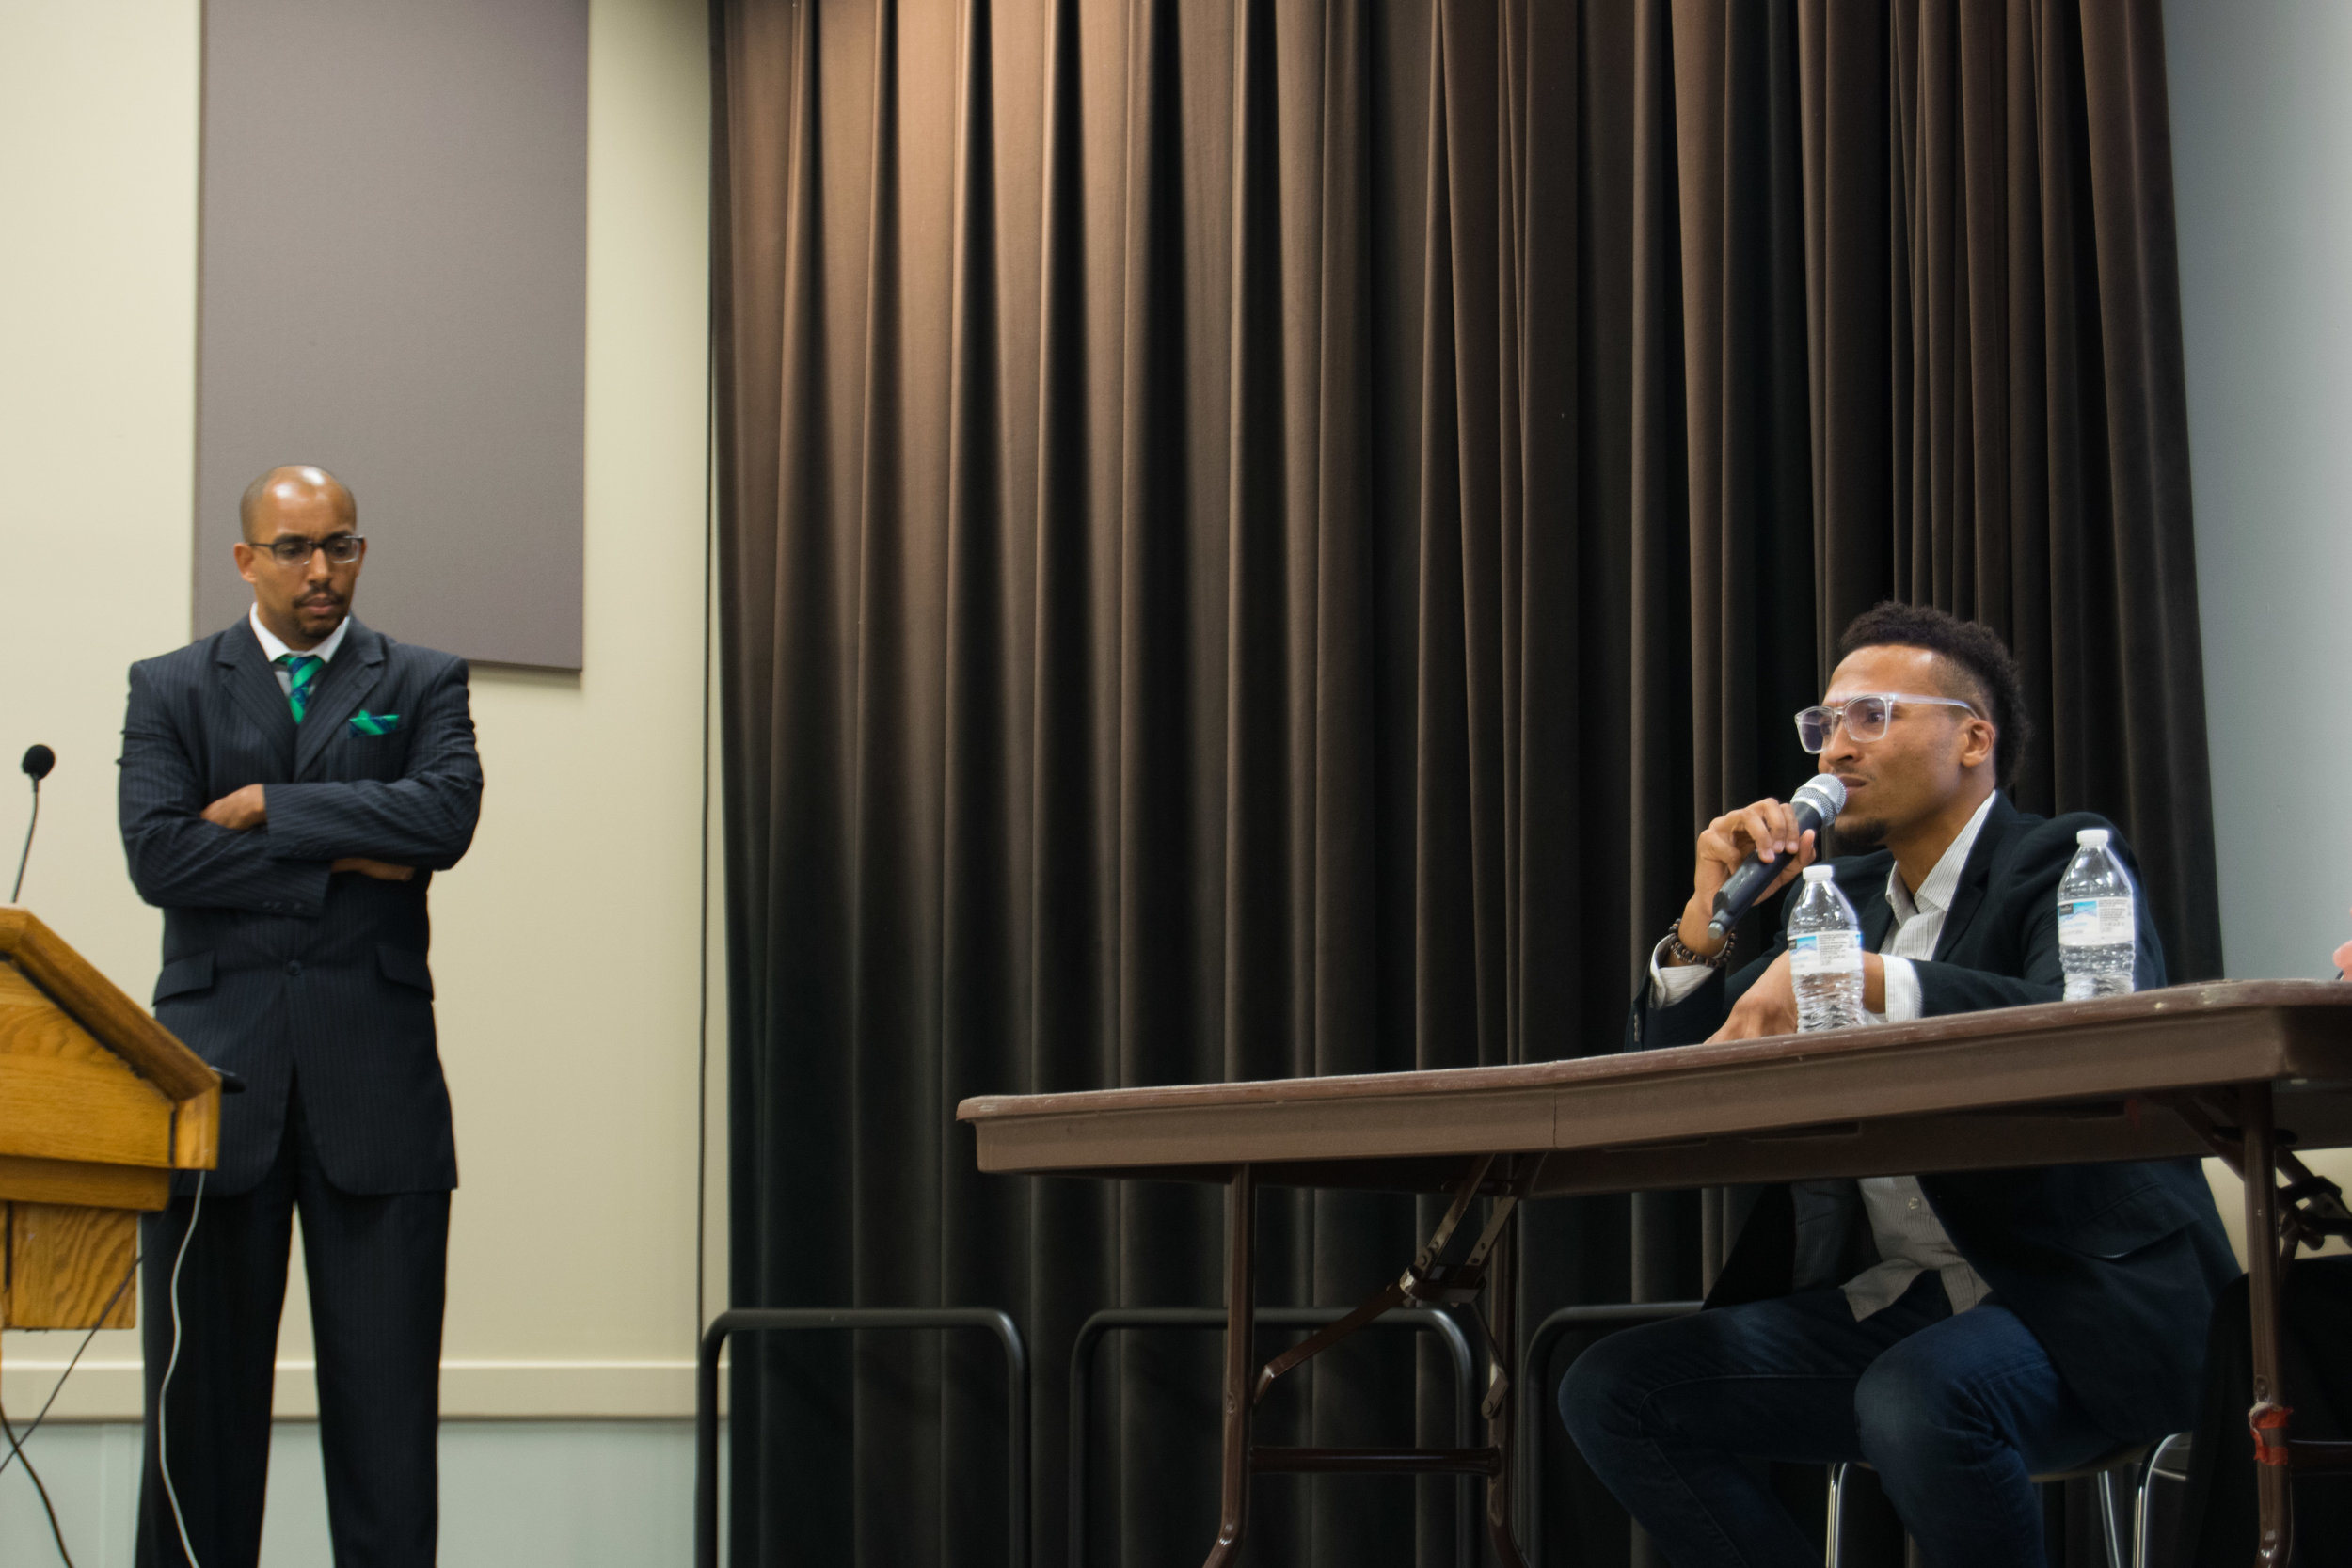 """Aaron T. O'Neal, attorney, activist, and organizer of Black is Back Coalition, responds to moderator Gregory D. Yancey's question at the Do Good Dialogue: Hands Up, Don't Shoot! hosted by The Clarice on Tuesday, Sept. 26, 2017. O'Neal reflected on the slogan """"Hands up, don't shoot"""" coming out of a necessity for a gentler struggle during the Ferguson protests. Photo: Amina Lampkin"""